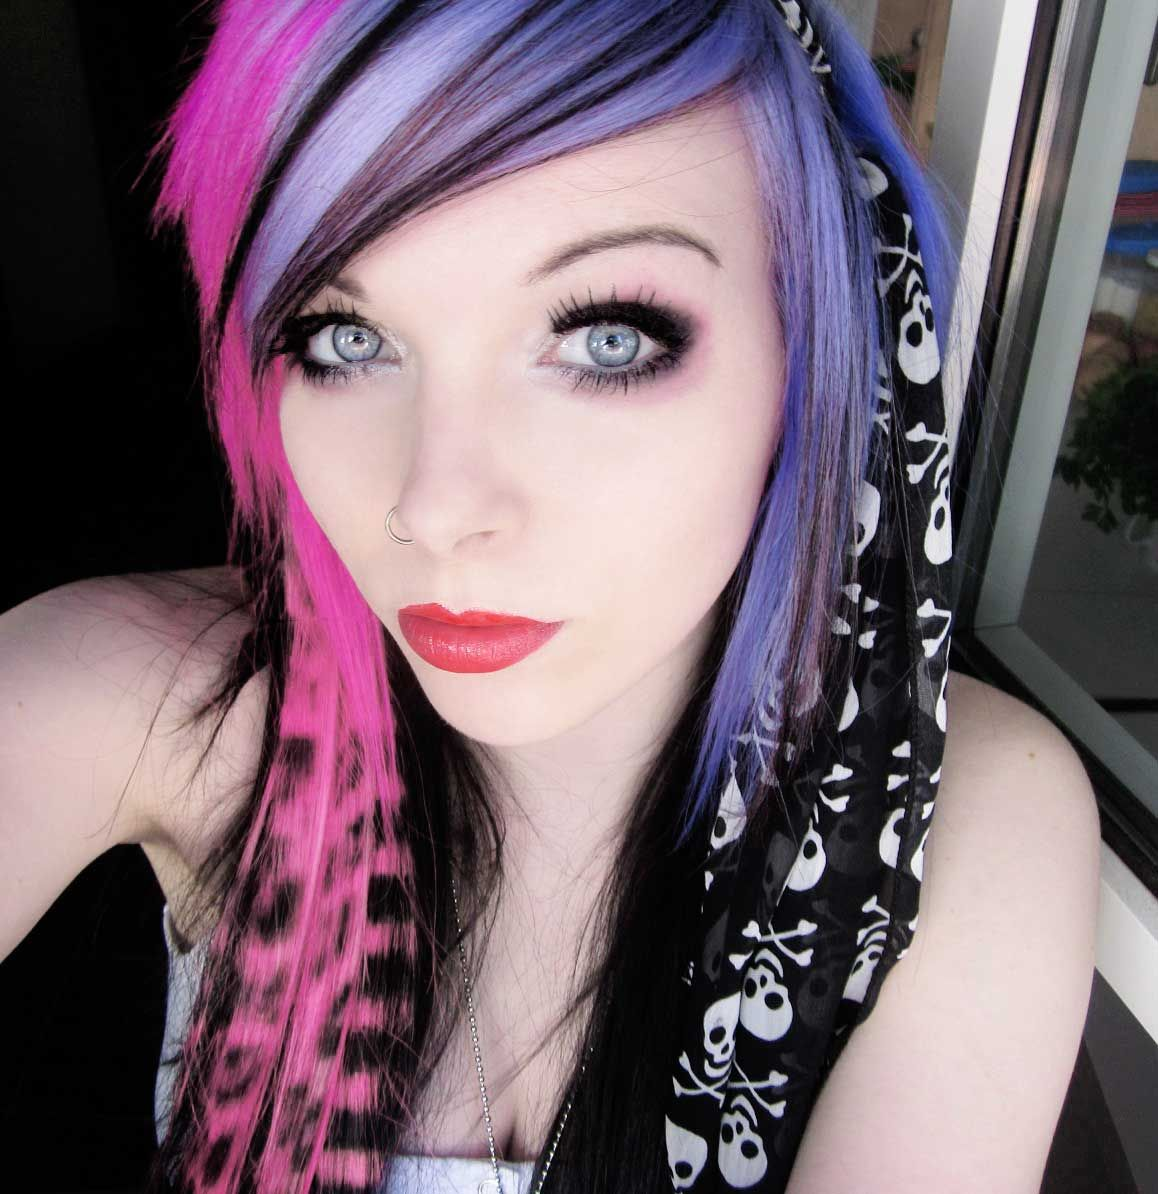 scene girls haircuts, styles, and colors pics  Emo emo girl, ira